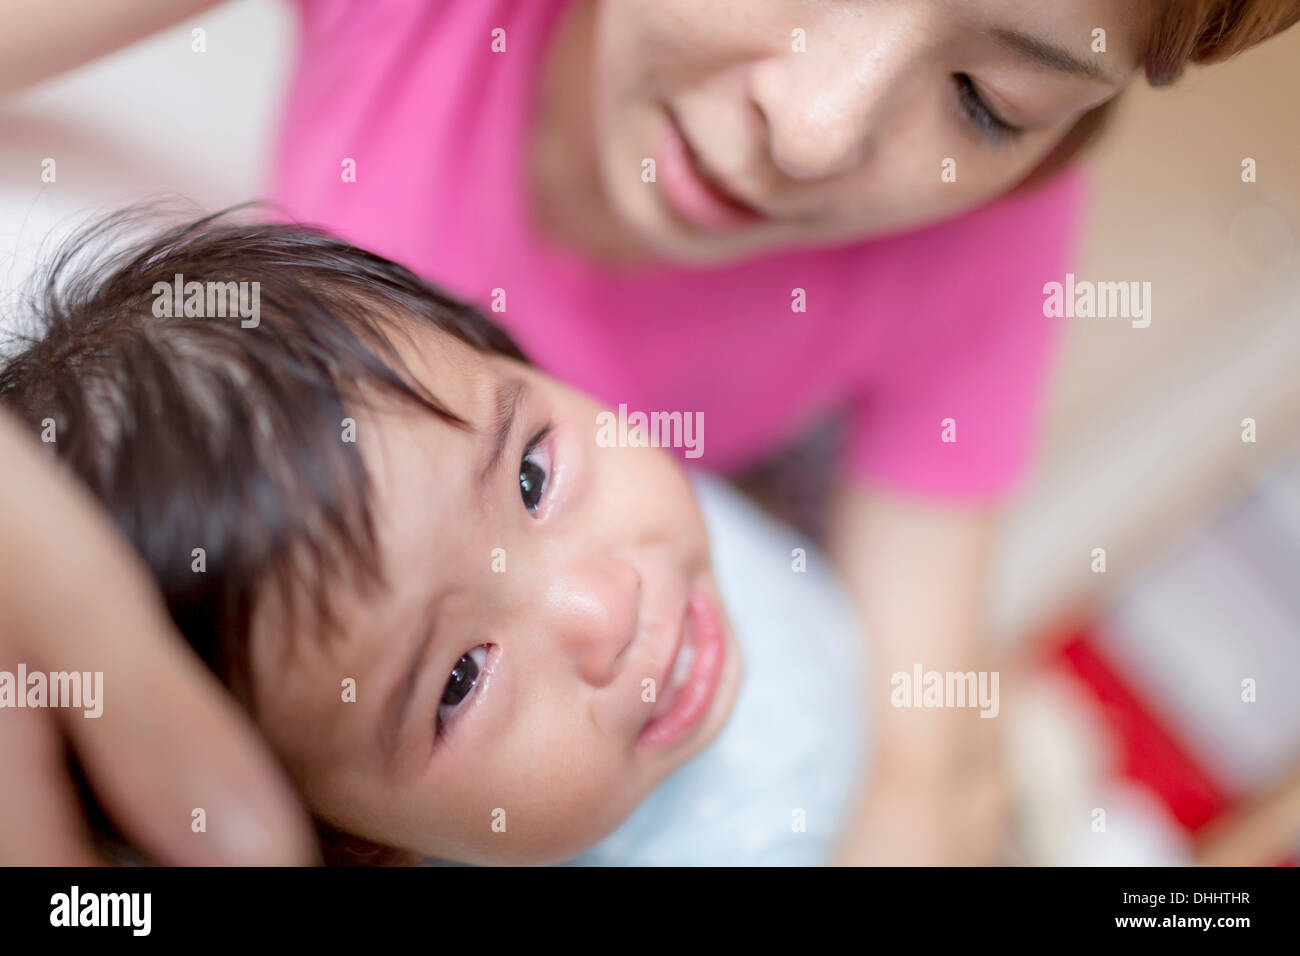 Mother pacifying crying baby - Stock Image